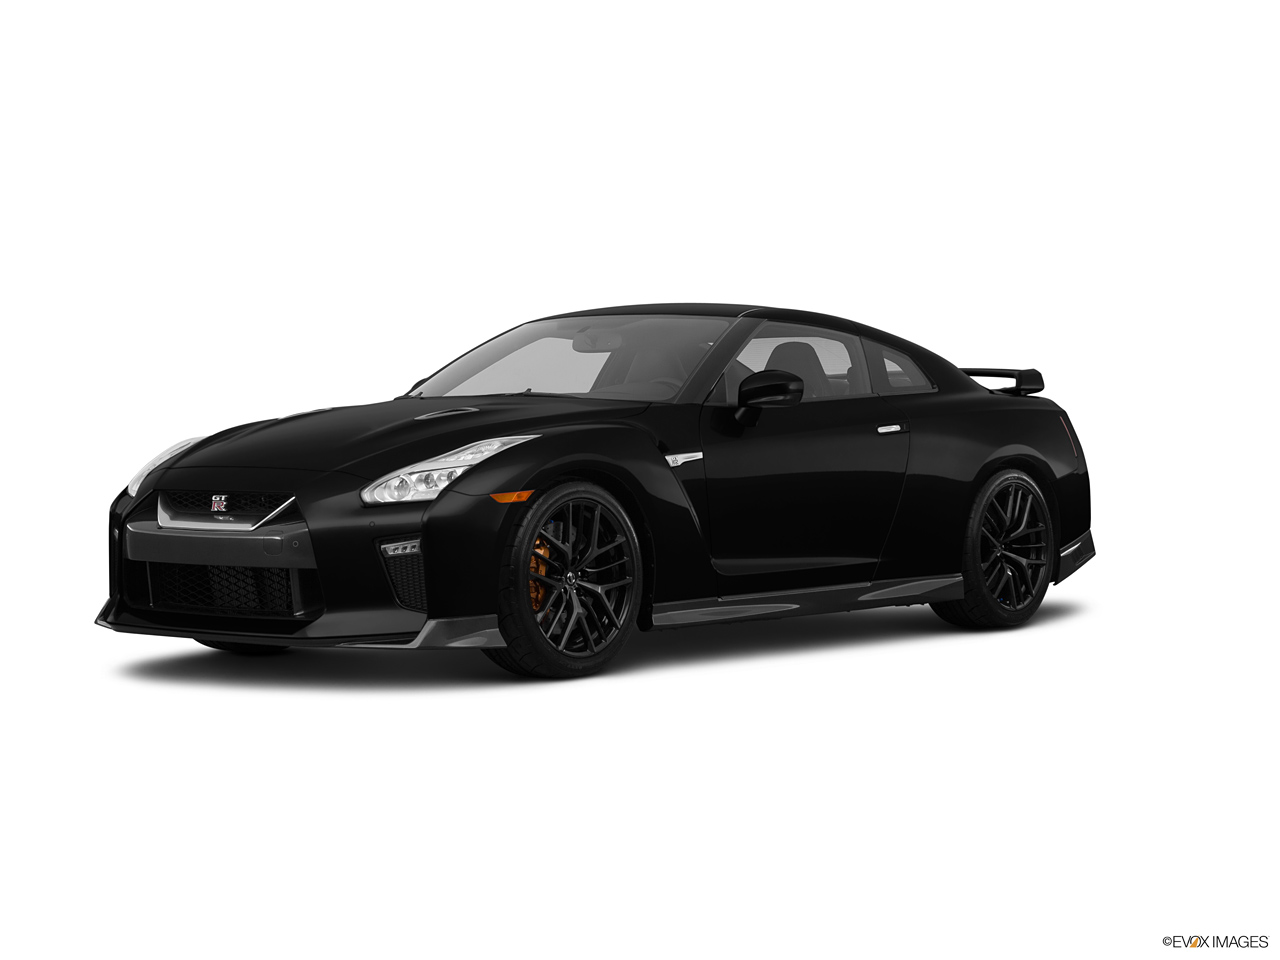 Car Pictures List for Nissan GT-R 2018 Black Edition ...